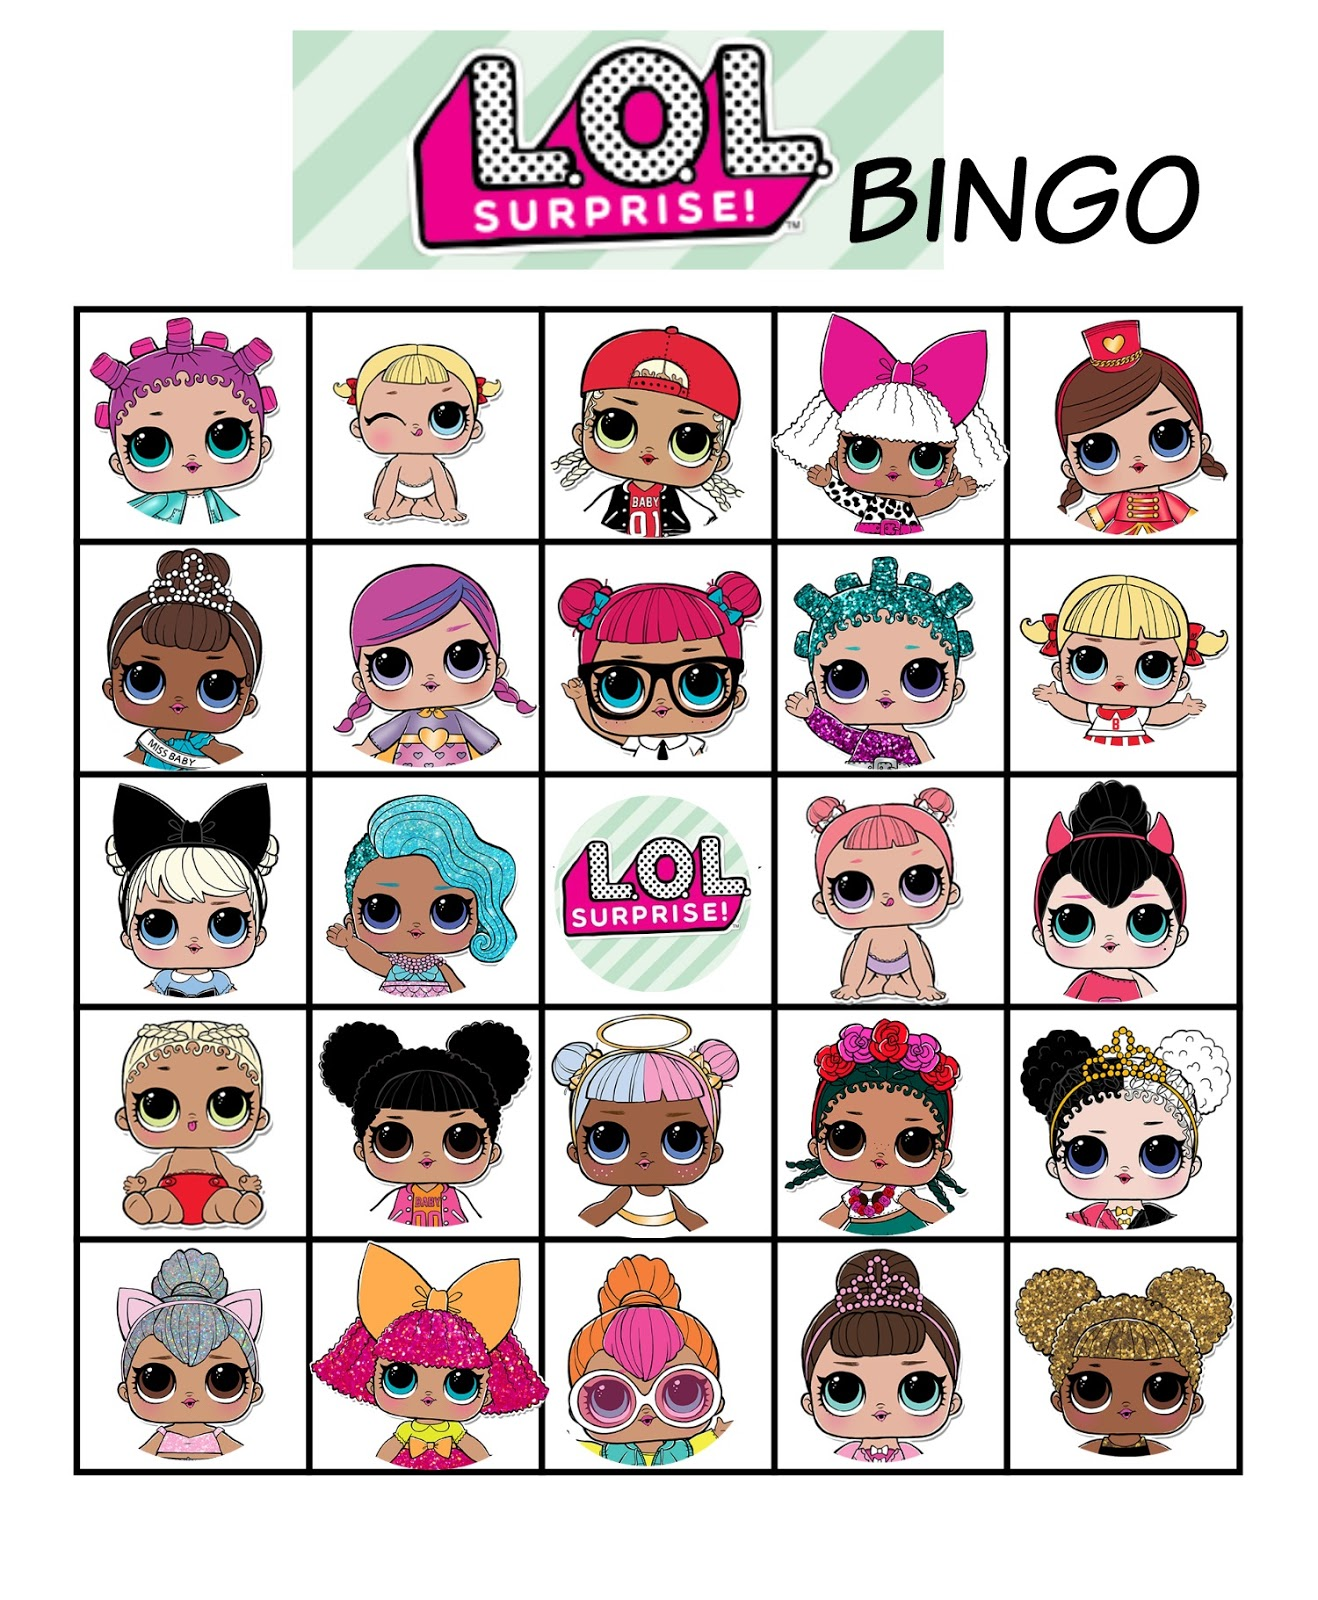 graphic regarding Lol Doll Printable identified as Musings of an Regular Mother: L.O.L. dolls Bingo